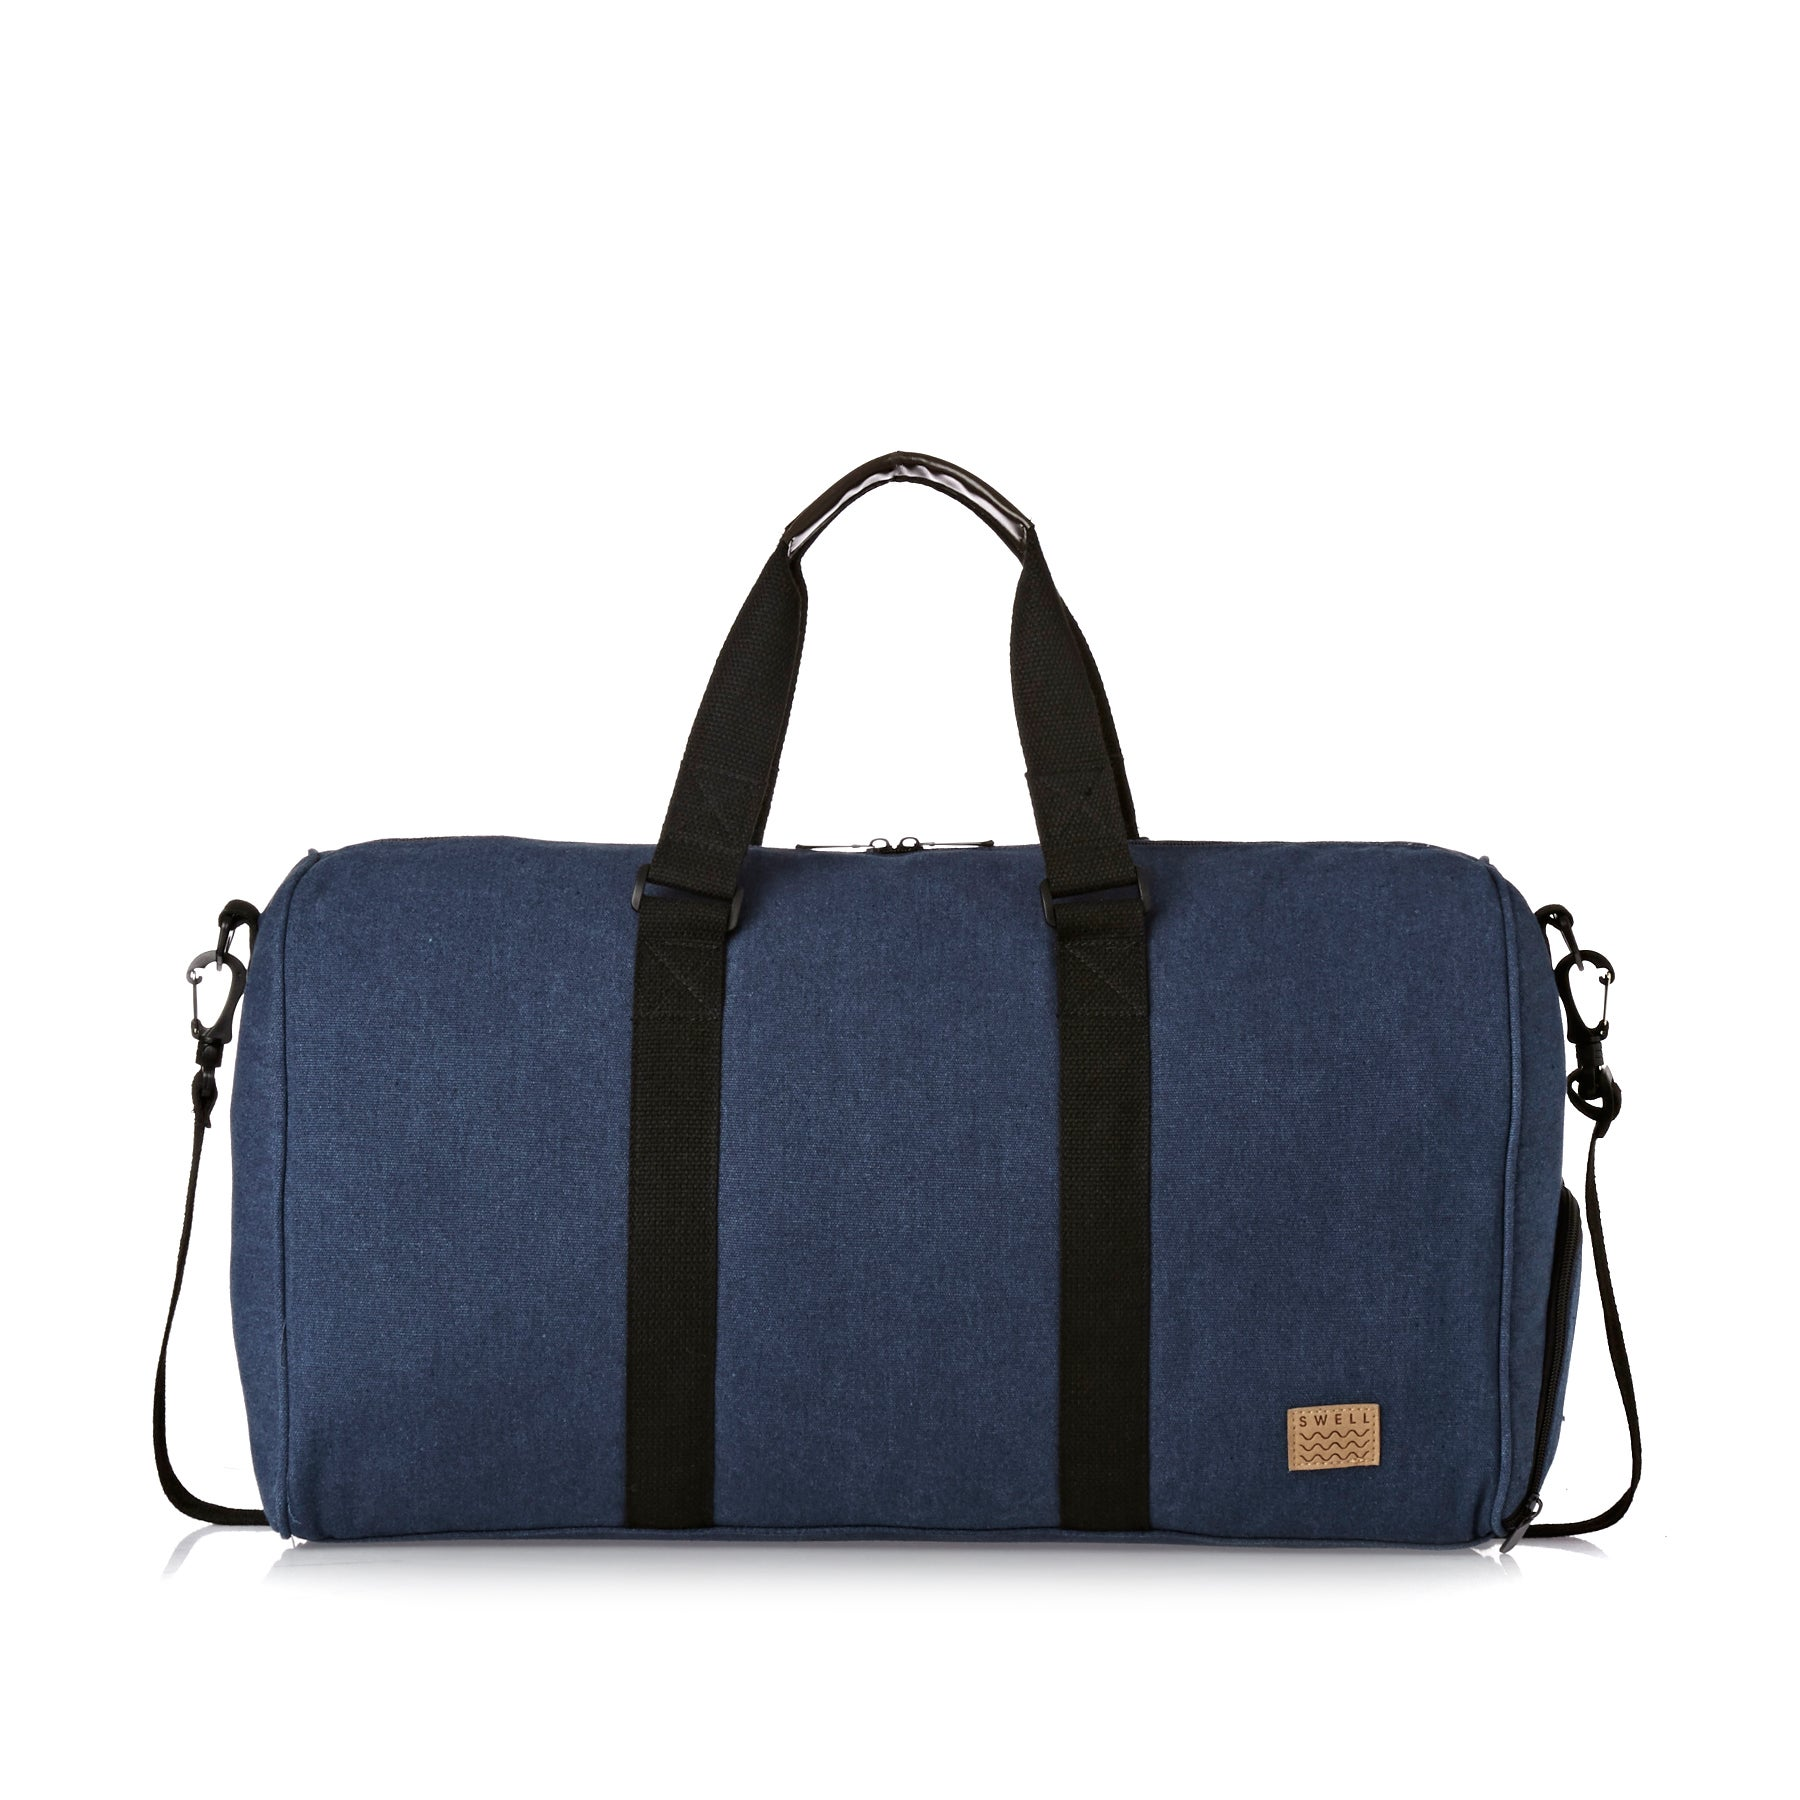 SWELL Washed Holdall Womens Duffle Bag - Navy